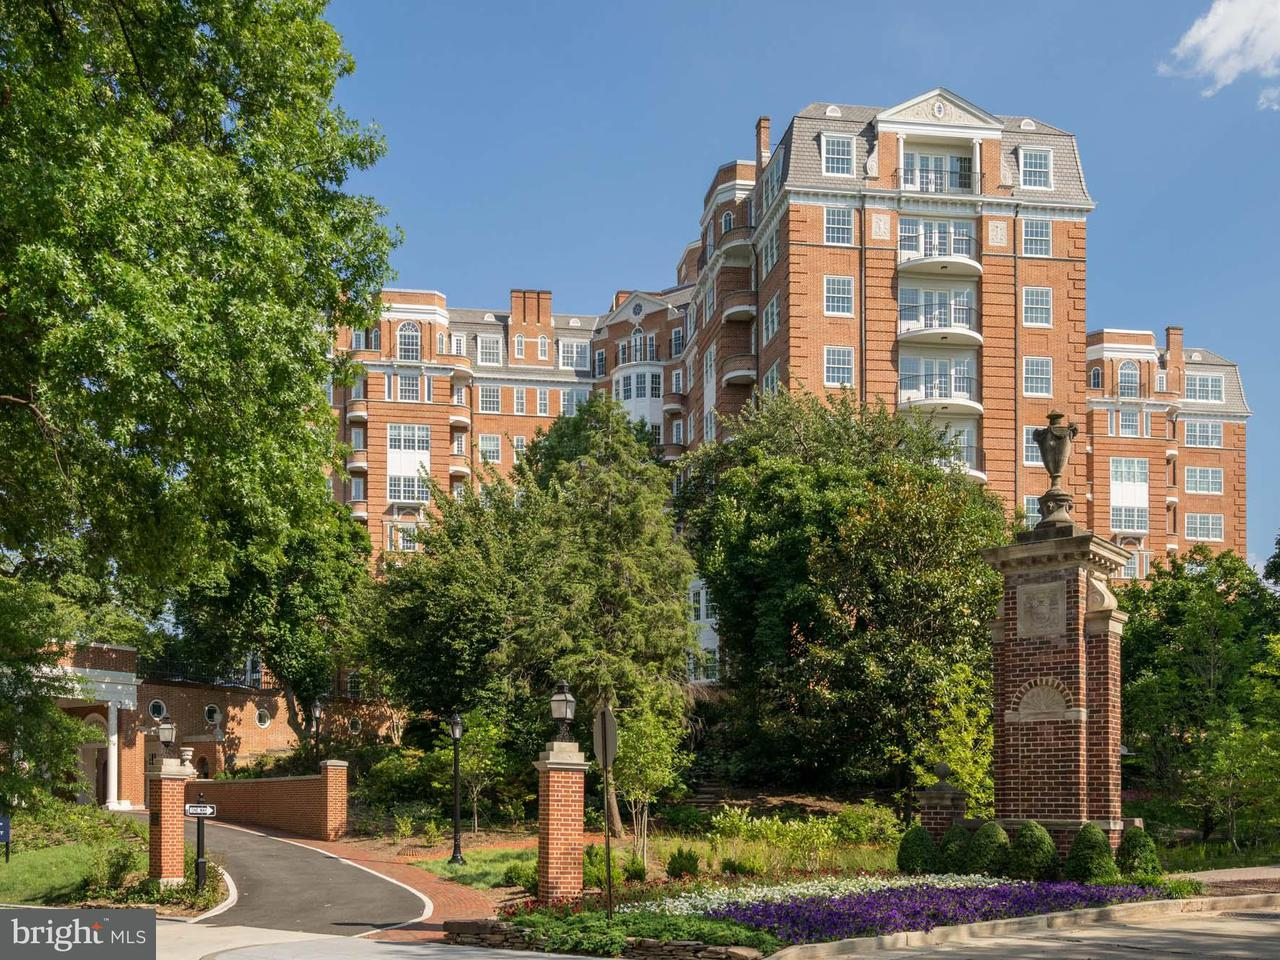 Single Family Home for Sale at 2660 CONNECTICUT AVE NW #5B 2660 CONNECTICUT AVE NW #5B Washington, District Of Columbia 20008 United States